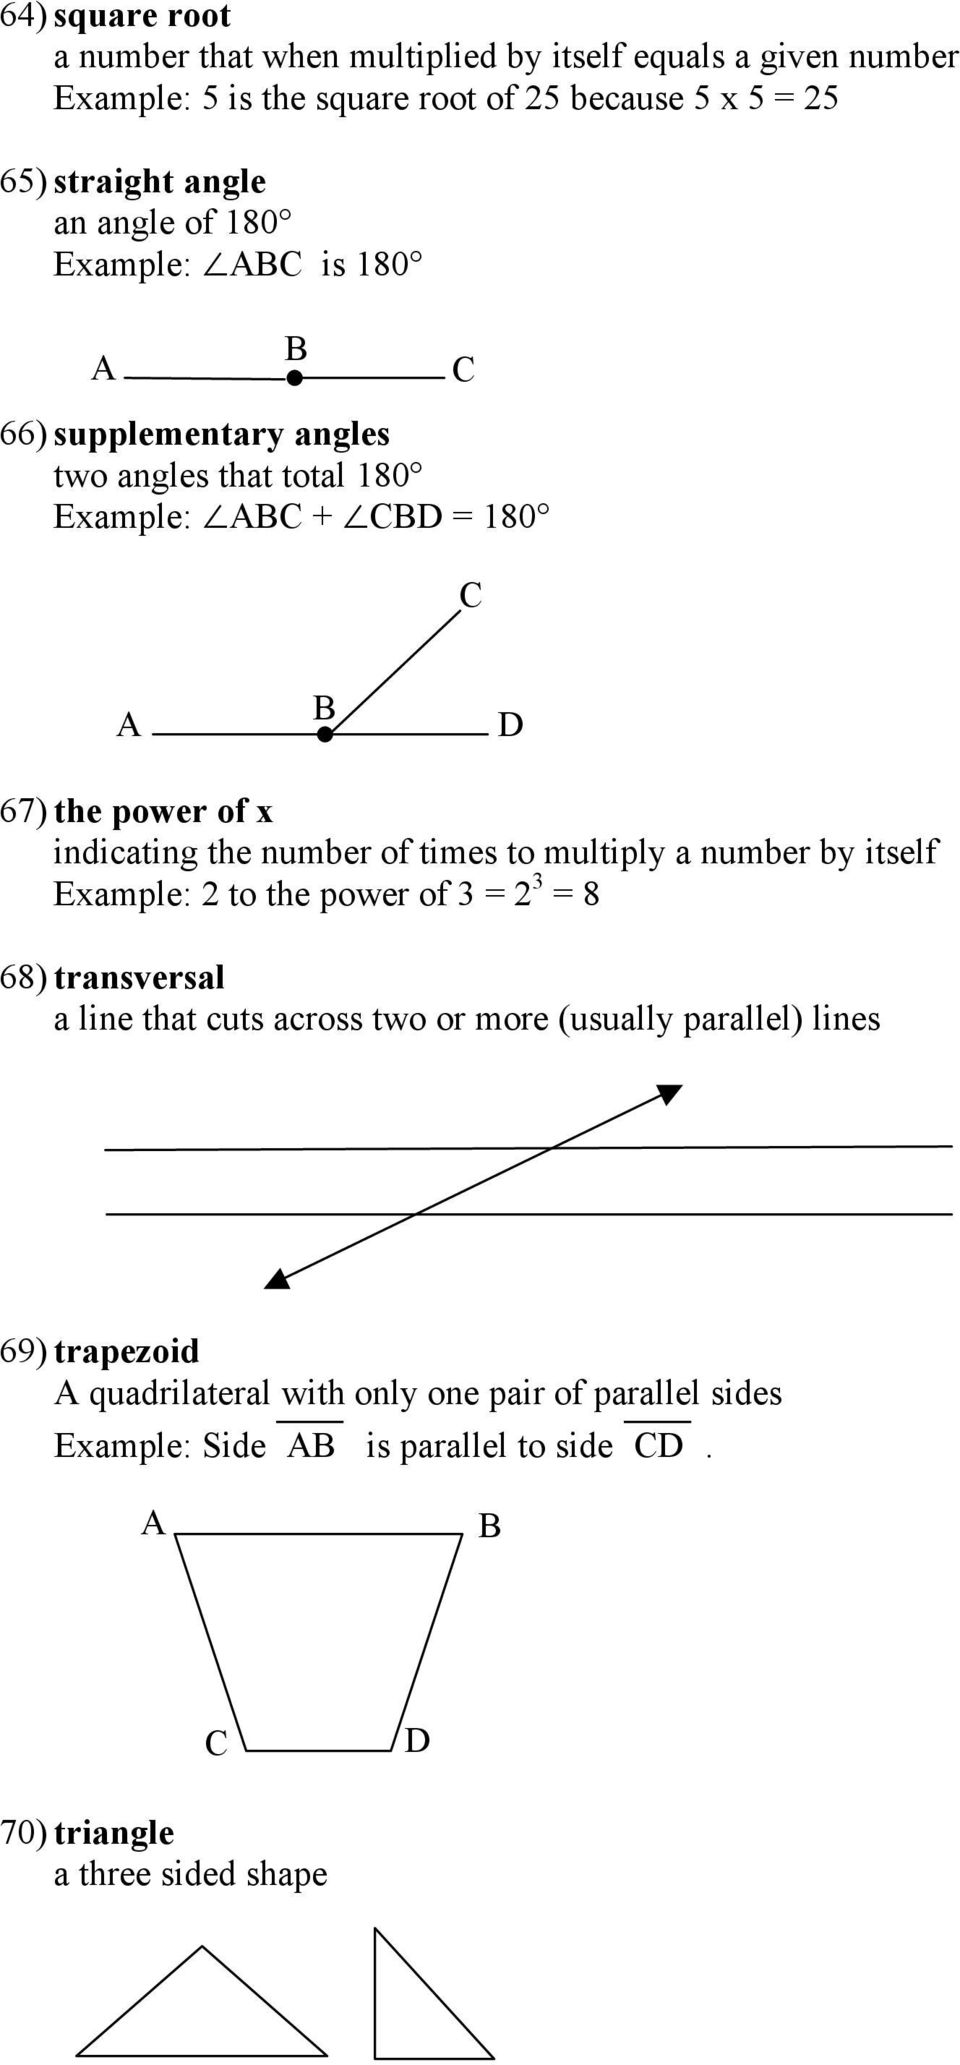 number of times to multiply a number by itself Example: 2 to the power of 3 = 2 3 = 8 68) transversal a line that cuts across two or more